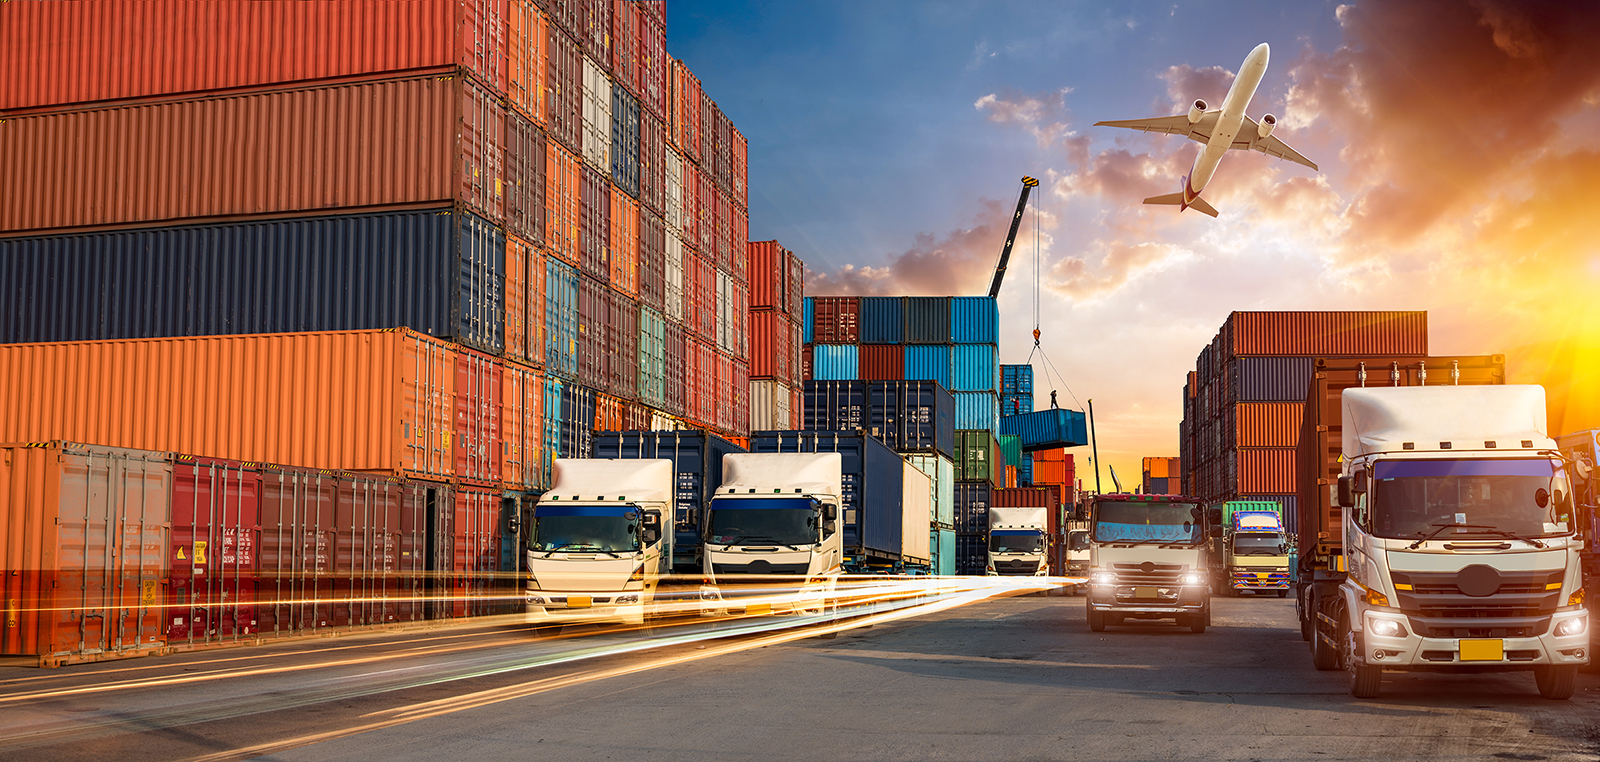 Driver Shortage Sets Off Alarms in the Supply Chain